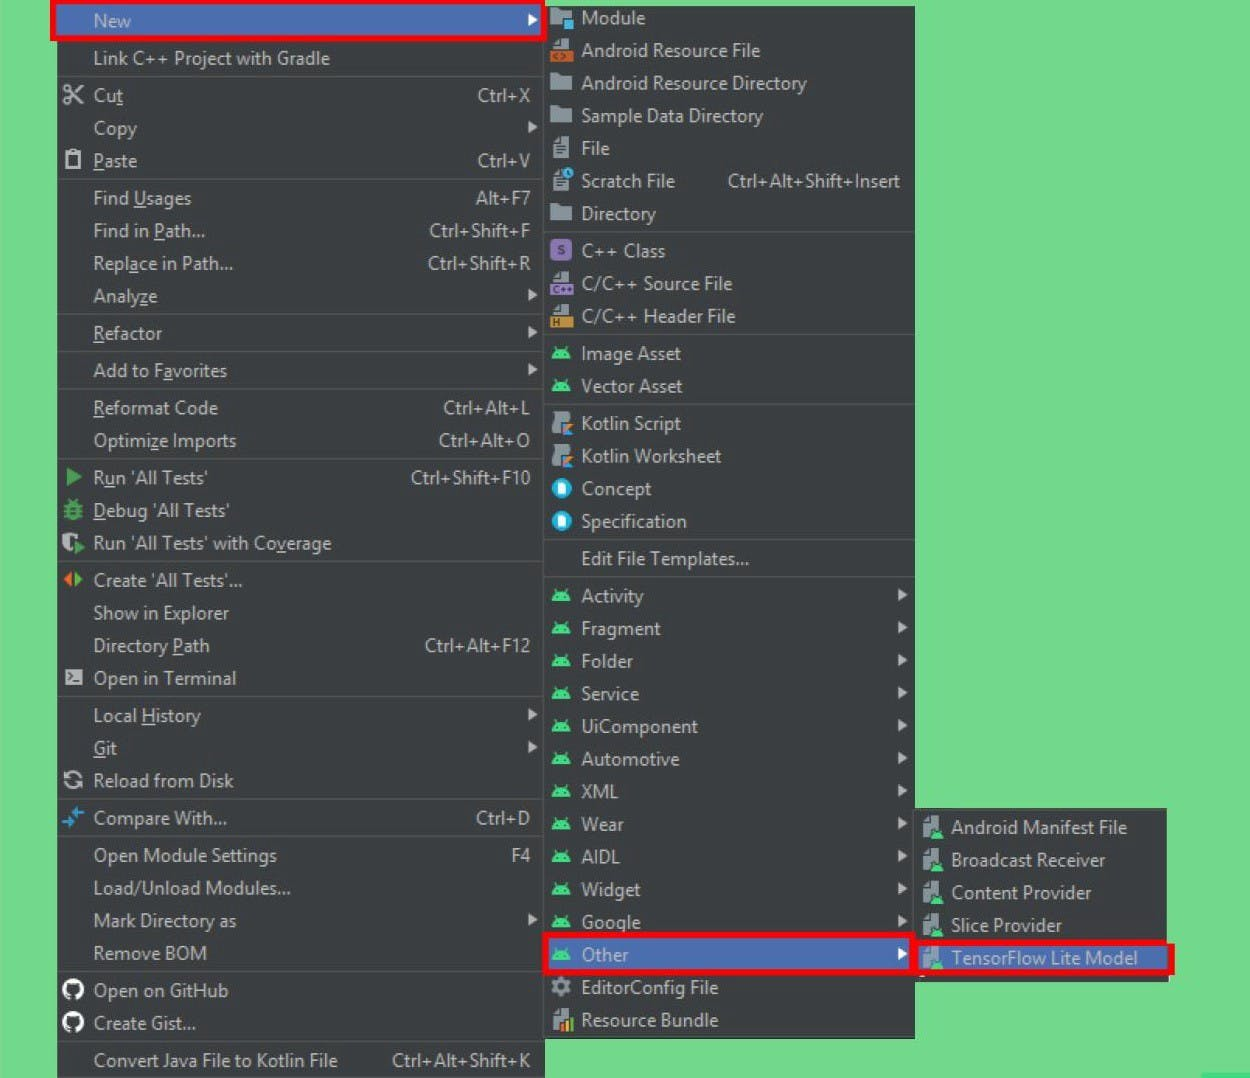 The import model option in Android Studio